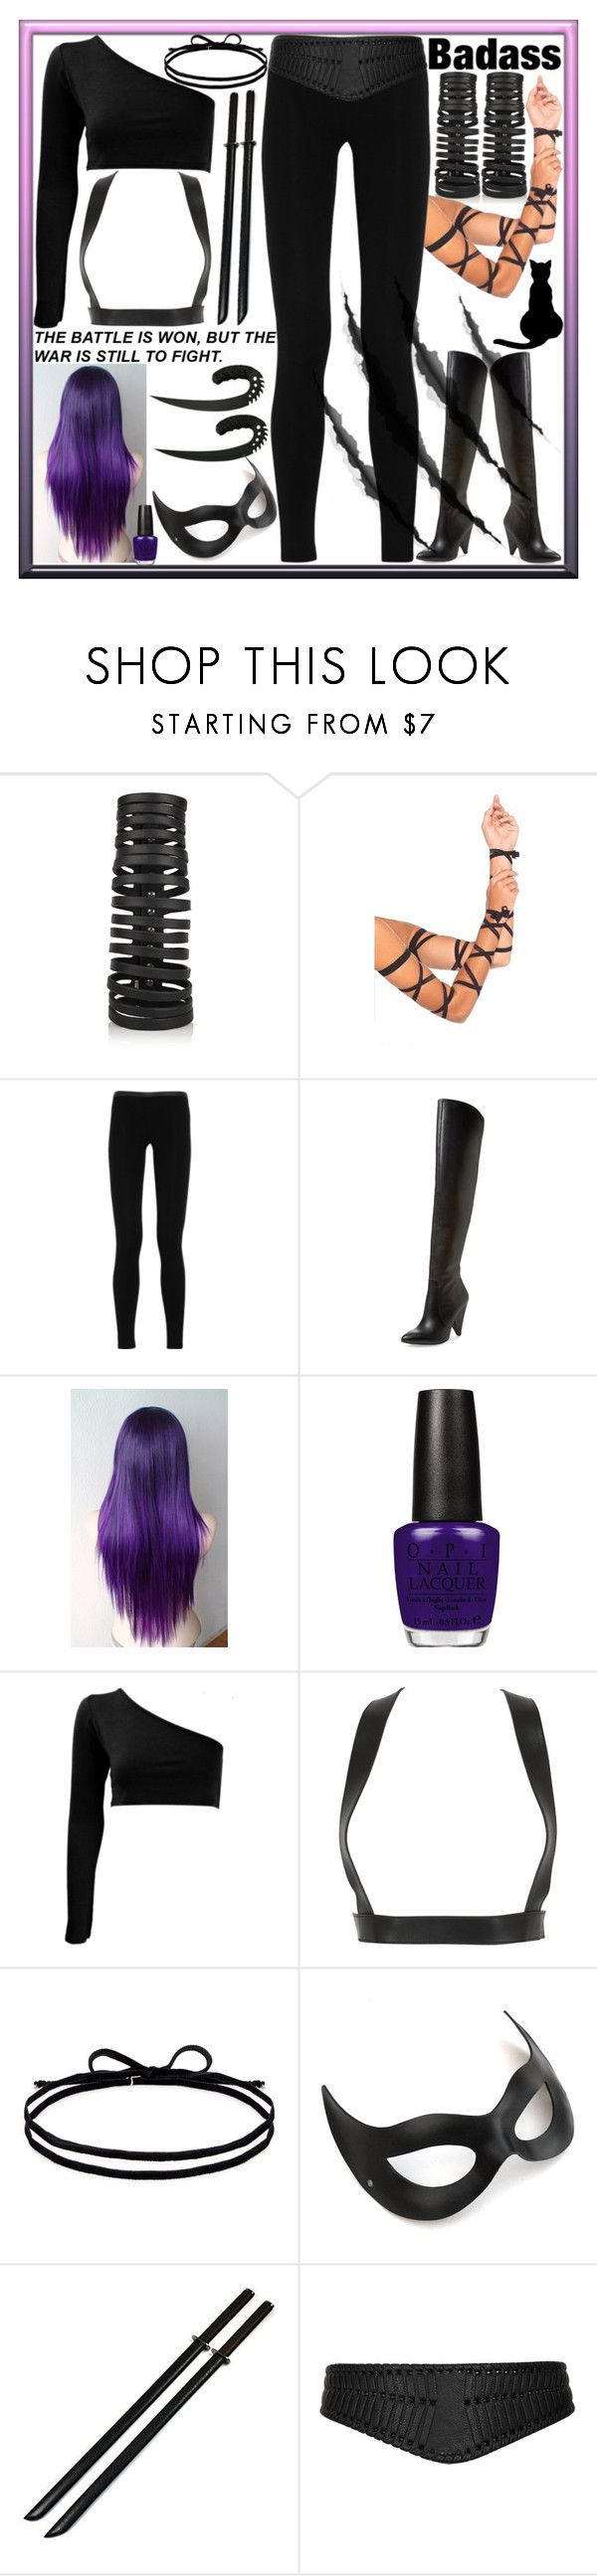 """""""The Last Battle"""" by dev-lynn ❤ liked on Polyvore featuring Rick Owens, Leg Avenue, Emilio Pucci, Vince Camuto, OPI, Zana Bayne, Joomi Lim and Topshop"""